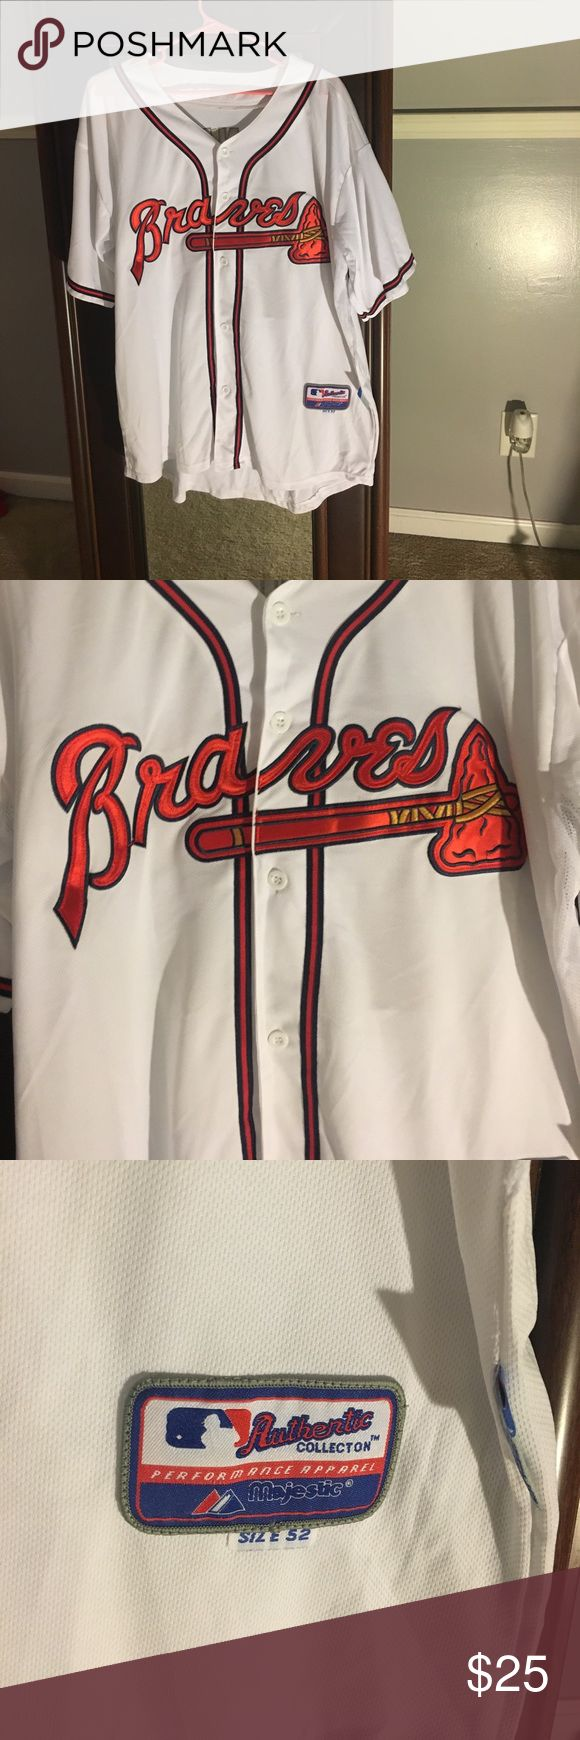 Chipper Jones Atlanta Braves Jersey When you go to Atlanta Braves games, you like to be outfitted in the best game day wear. Arrive in this Men's Chipper Jones Atlanta Braves White Replica Home Cool Base Jersey and you'll be ready to cheer your favorite team on to victory! It features Atlanta Braves graphics on the front and back to prove you're the biggest fan around. Shirts